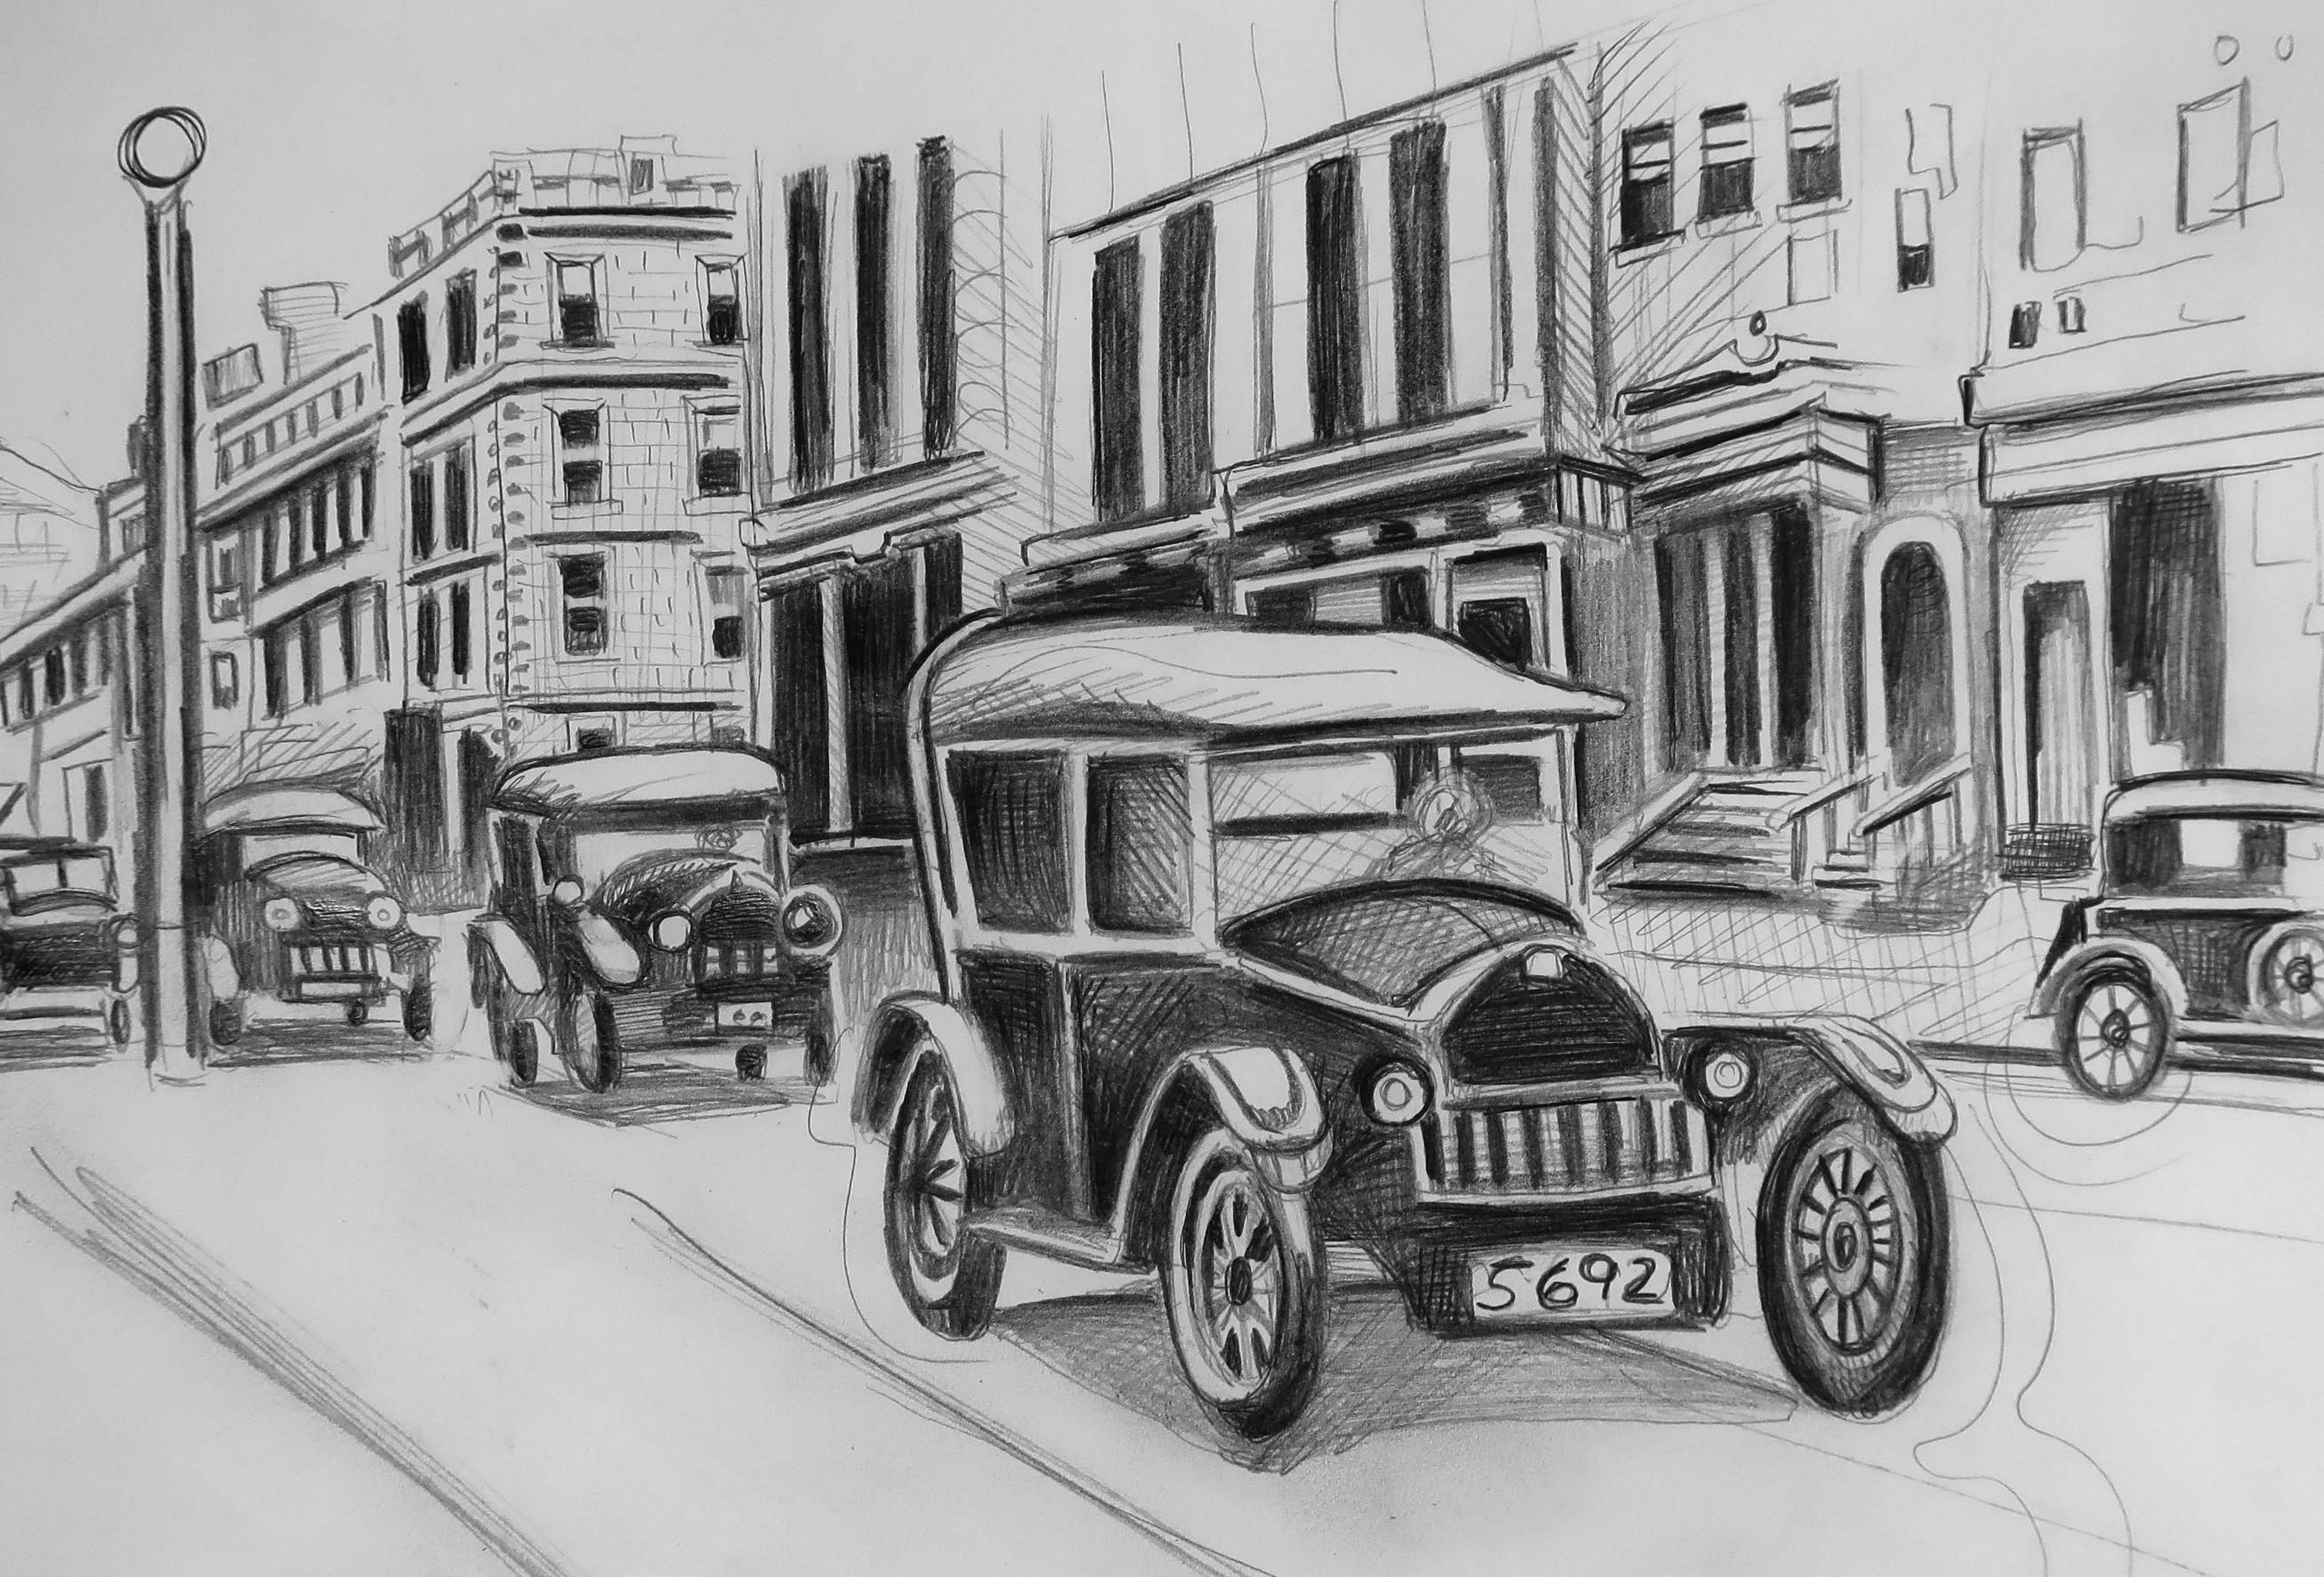 Illustration of historical automobiles in Old Town Portland